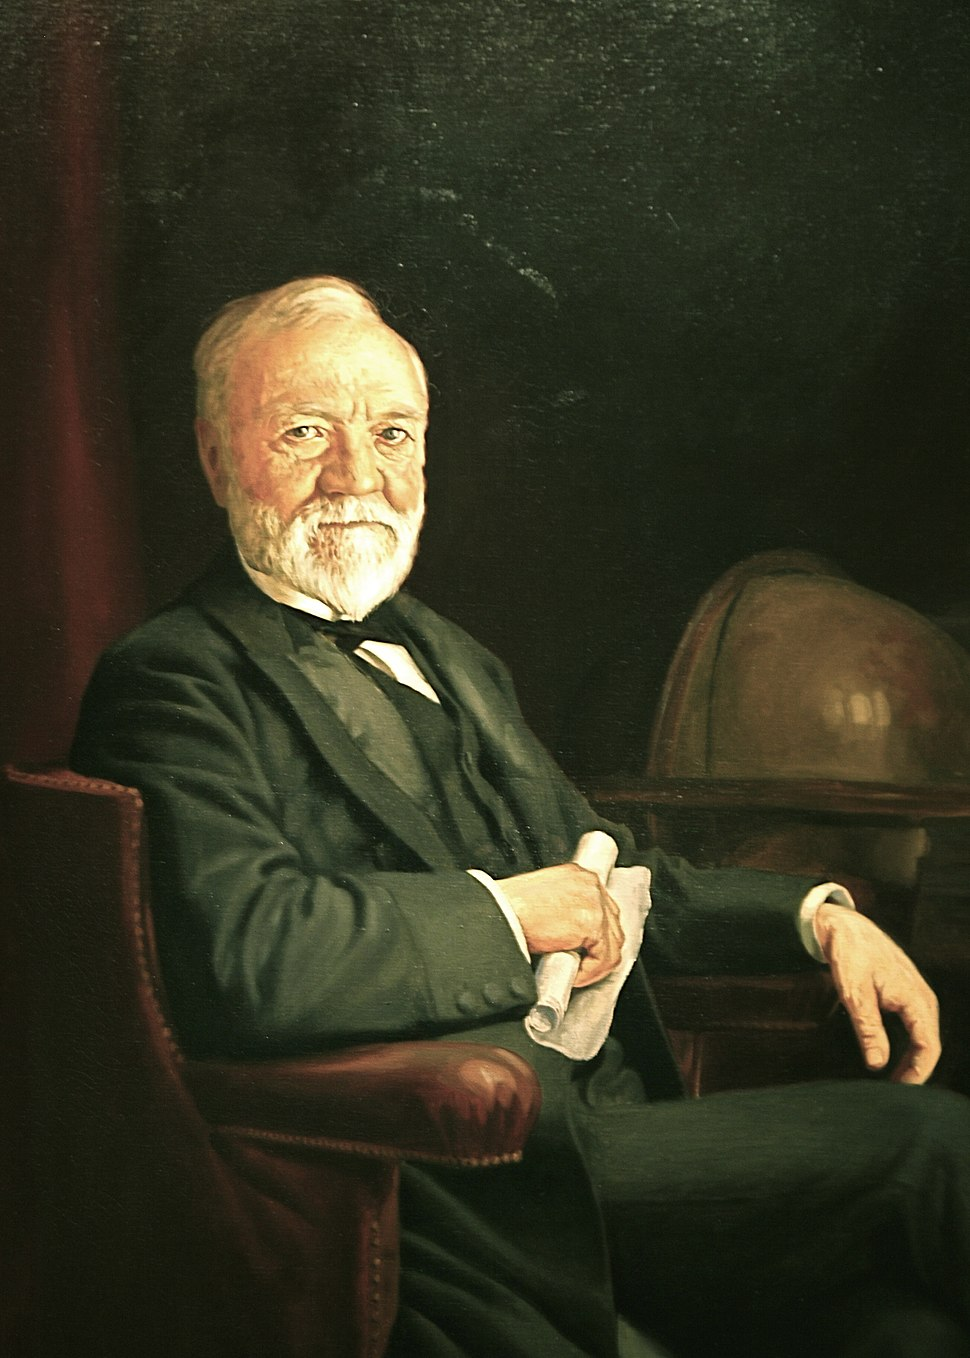 Andrew Carnegie in National Portrait Gallery IMG 4441